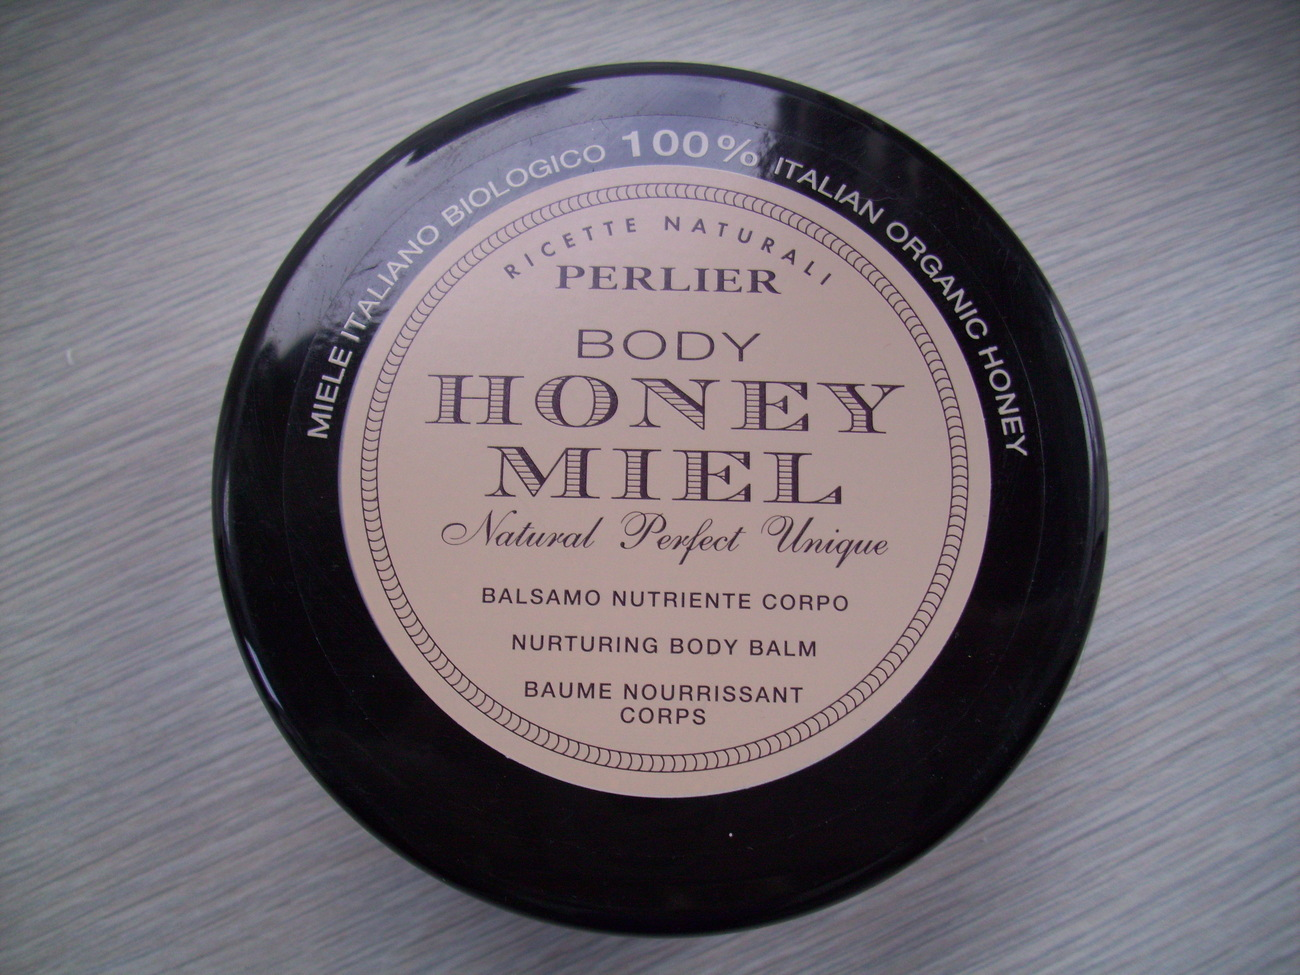 PERLIER BODY HONEY MIEL NURTURING BODY BALM